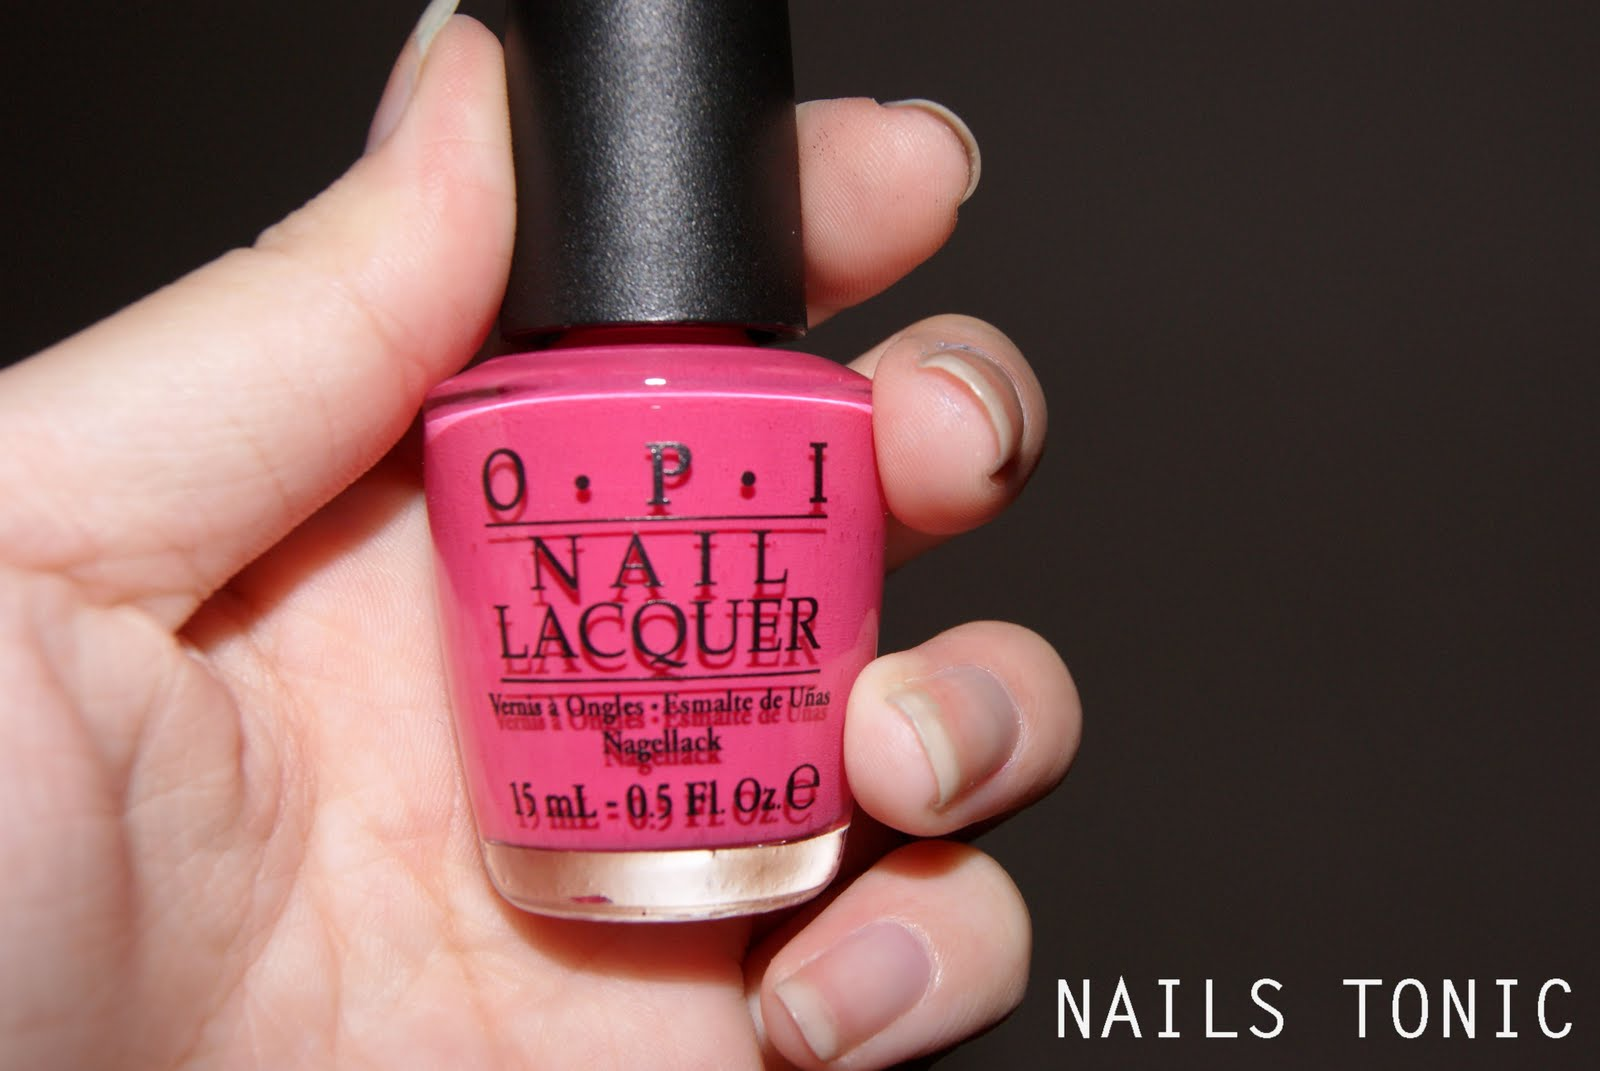 NAILS TONIC: Nail Tip of the Day #4 : Real or Fake OPI polishes?